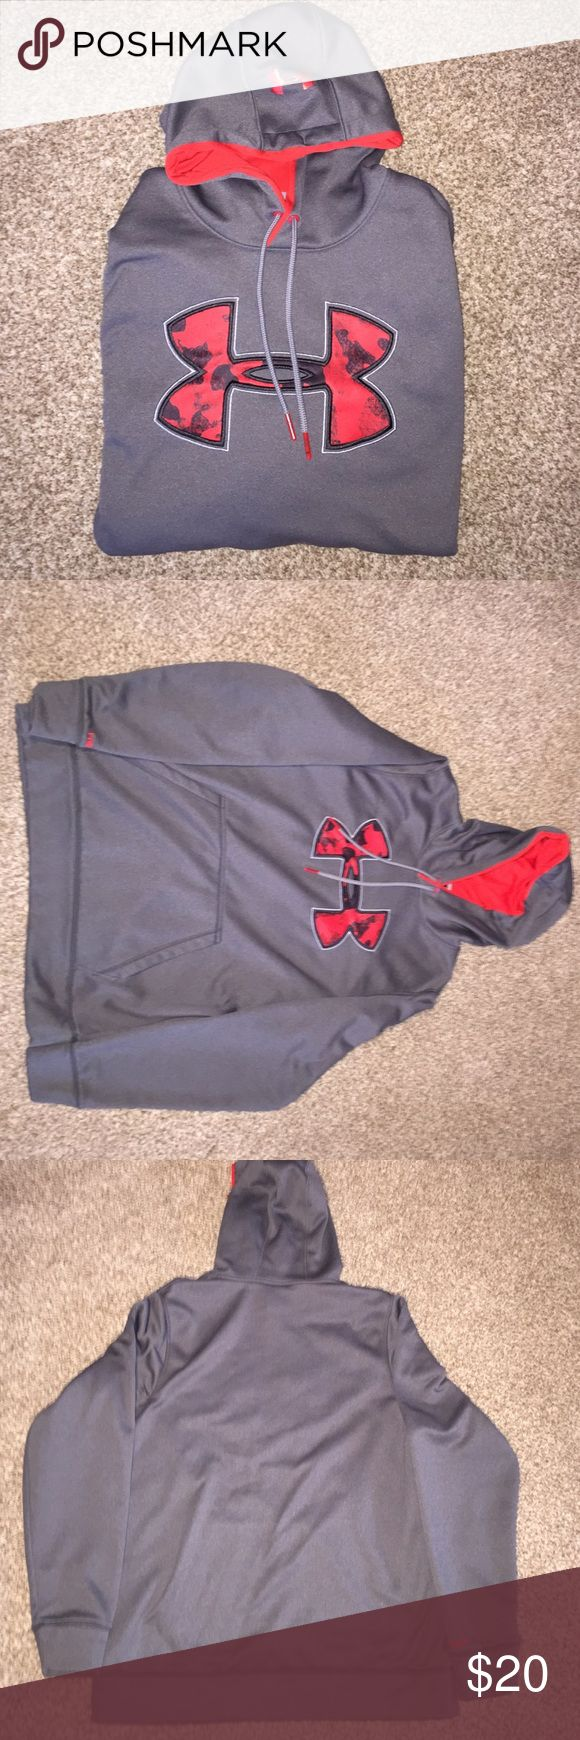 Under Armour Hoodie brand new Brand new UA hoodie, size medium men's but could easily fit a large. No holes, stains, etc. never worn. Open to offers Under Armour Jackets & Coats